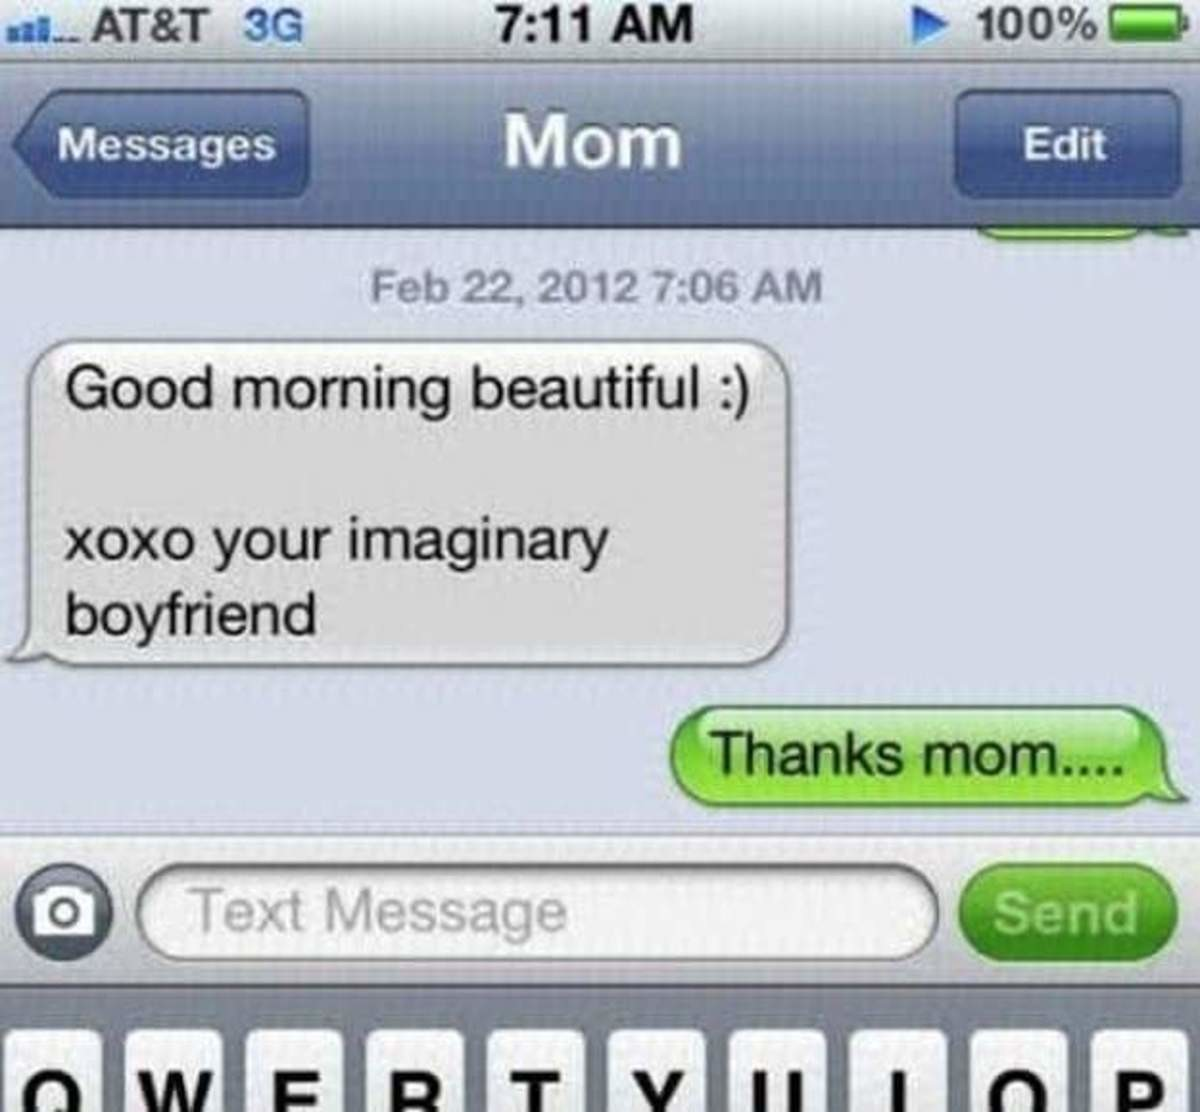 Texts From Mom and Dad. . Messages Feb 22, 2012 we Juli/ ll Good morning beautiful z) xoxo your imaginaryverizon as 2: 30 PM tit. / Messages Dec 26, 2012 2: 30